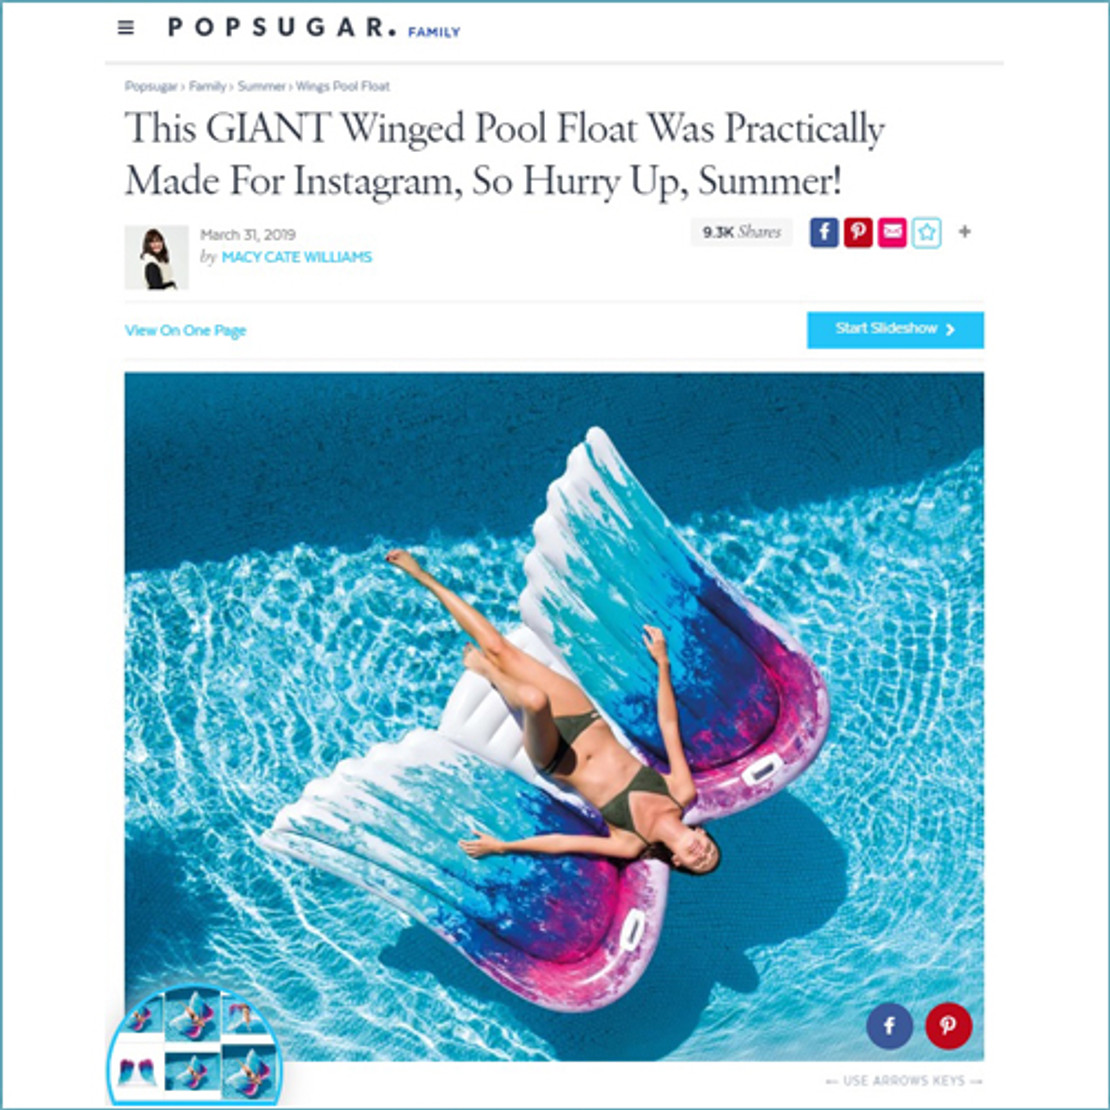 4/11/2019 - This GIANT Winged Pool Float Was Practically Made For Instagram, So Hurry Up, Summer!